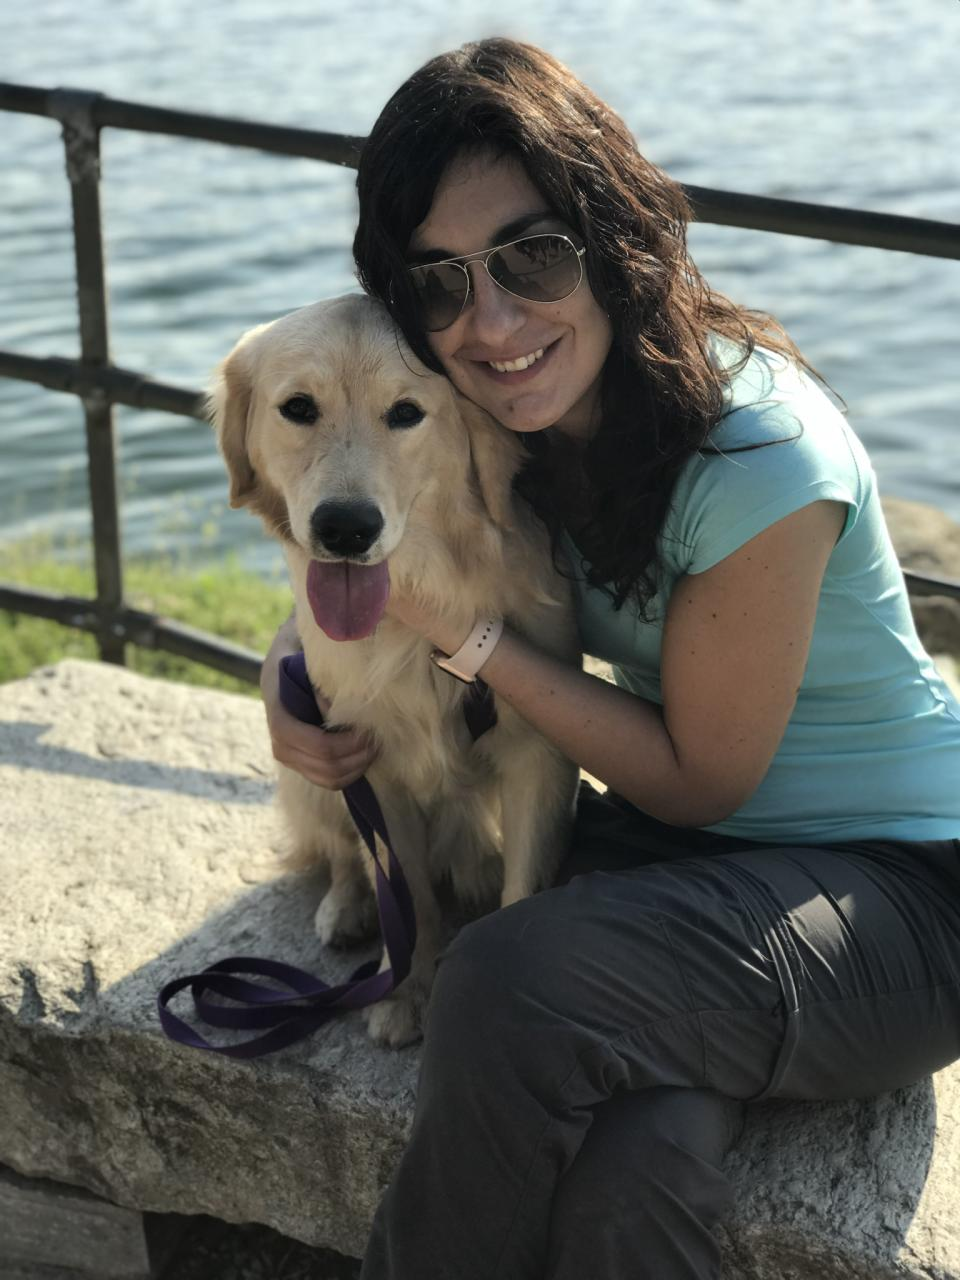 Valentina Crudo-Josefosky, an emergency and internal medicine doctor at a hospital near Turin, Italy, tells Yahoo Lifestyle that her dog, Waffle, has helped her deal with anxiety and sadness during the coronavirus pandemic. (Credit: Photo courtesy Valentina Crudo-Josefosky)